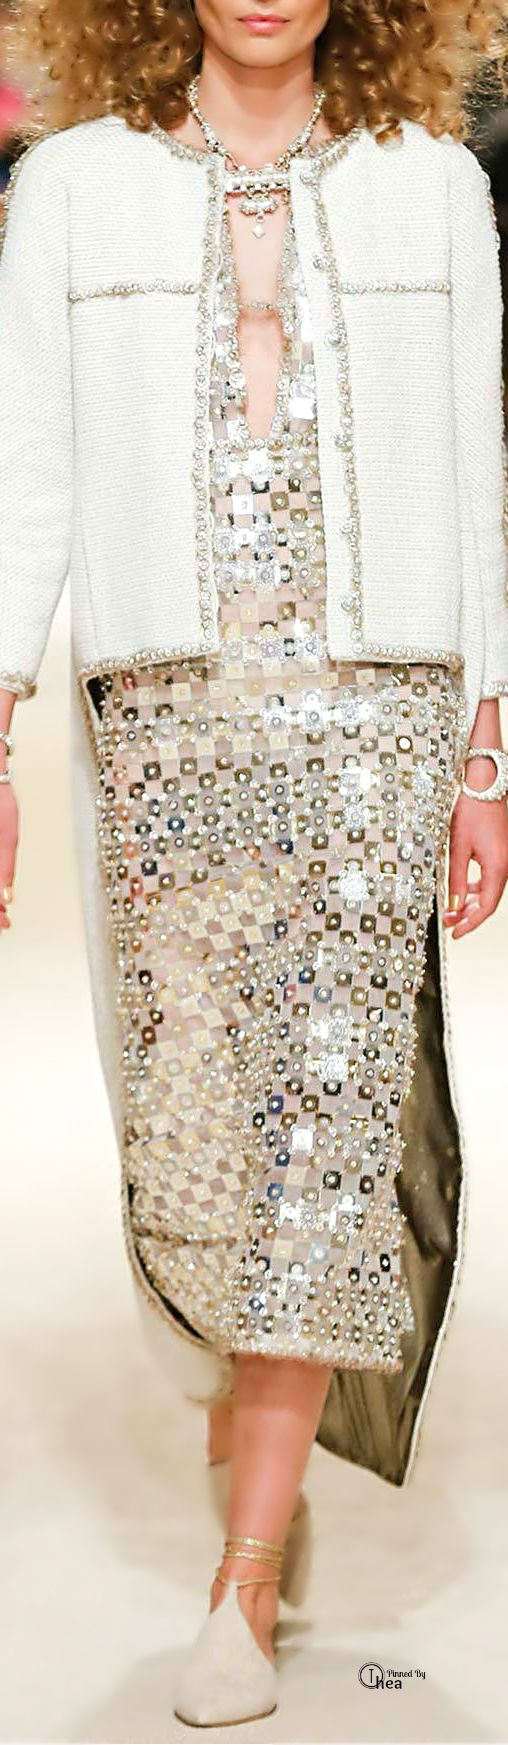 Chanel Resort 2015. Bring the sparkle back, for affordable ideas visit Dufferin Mall on Facebook.